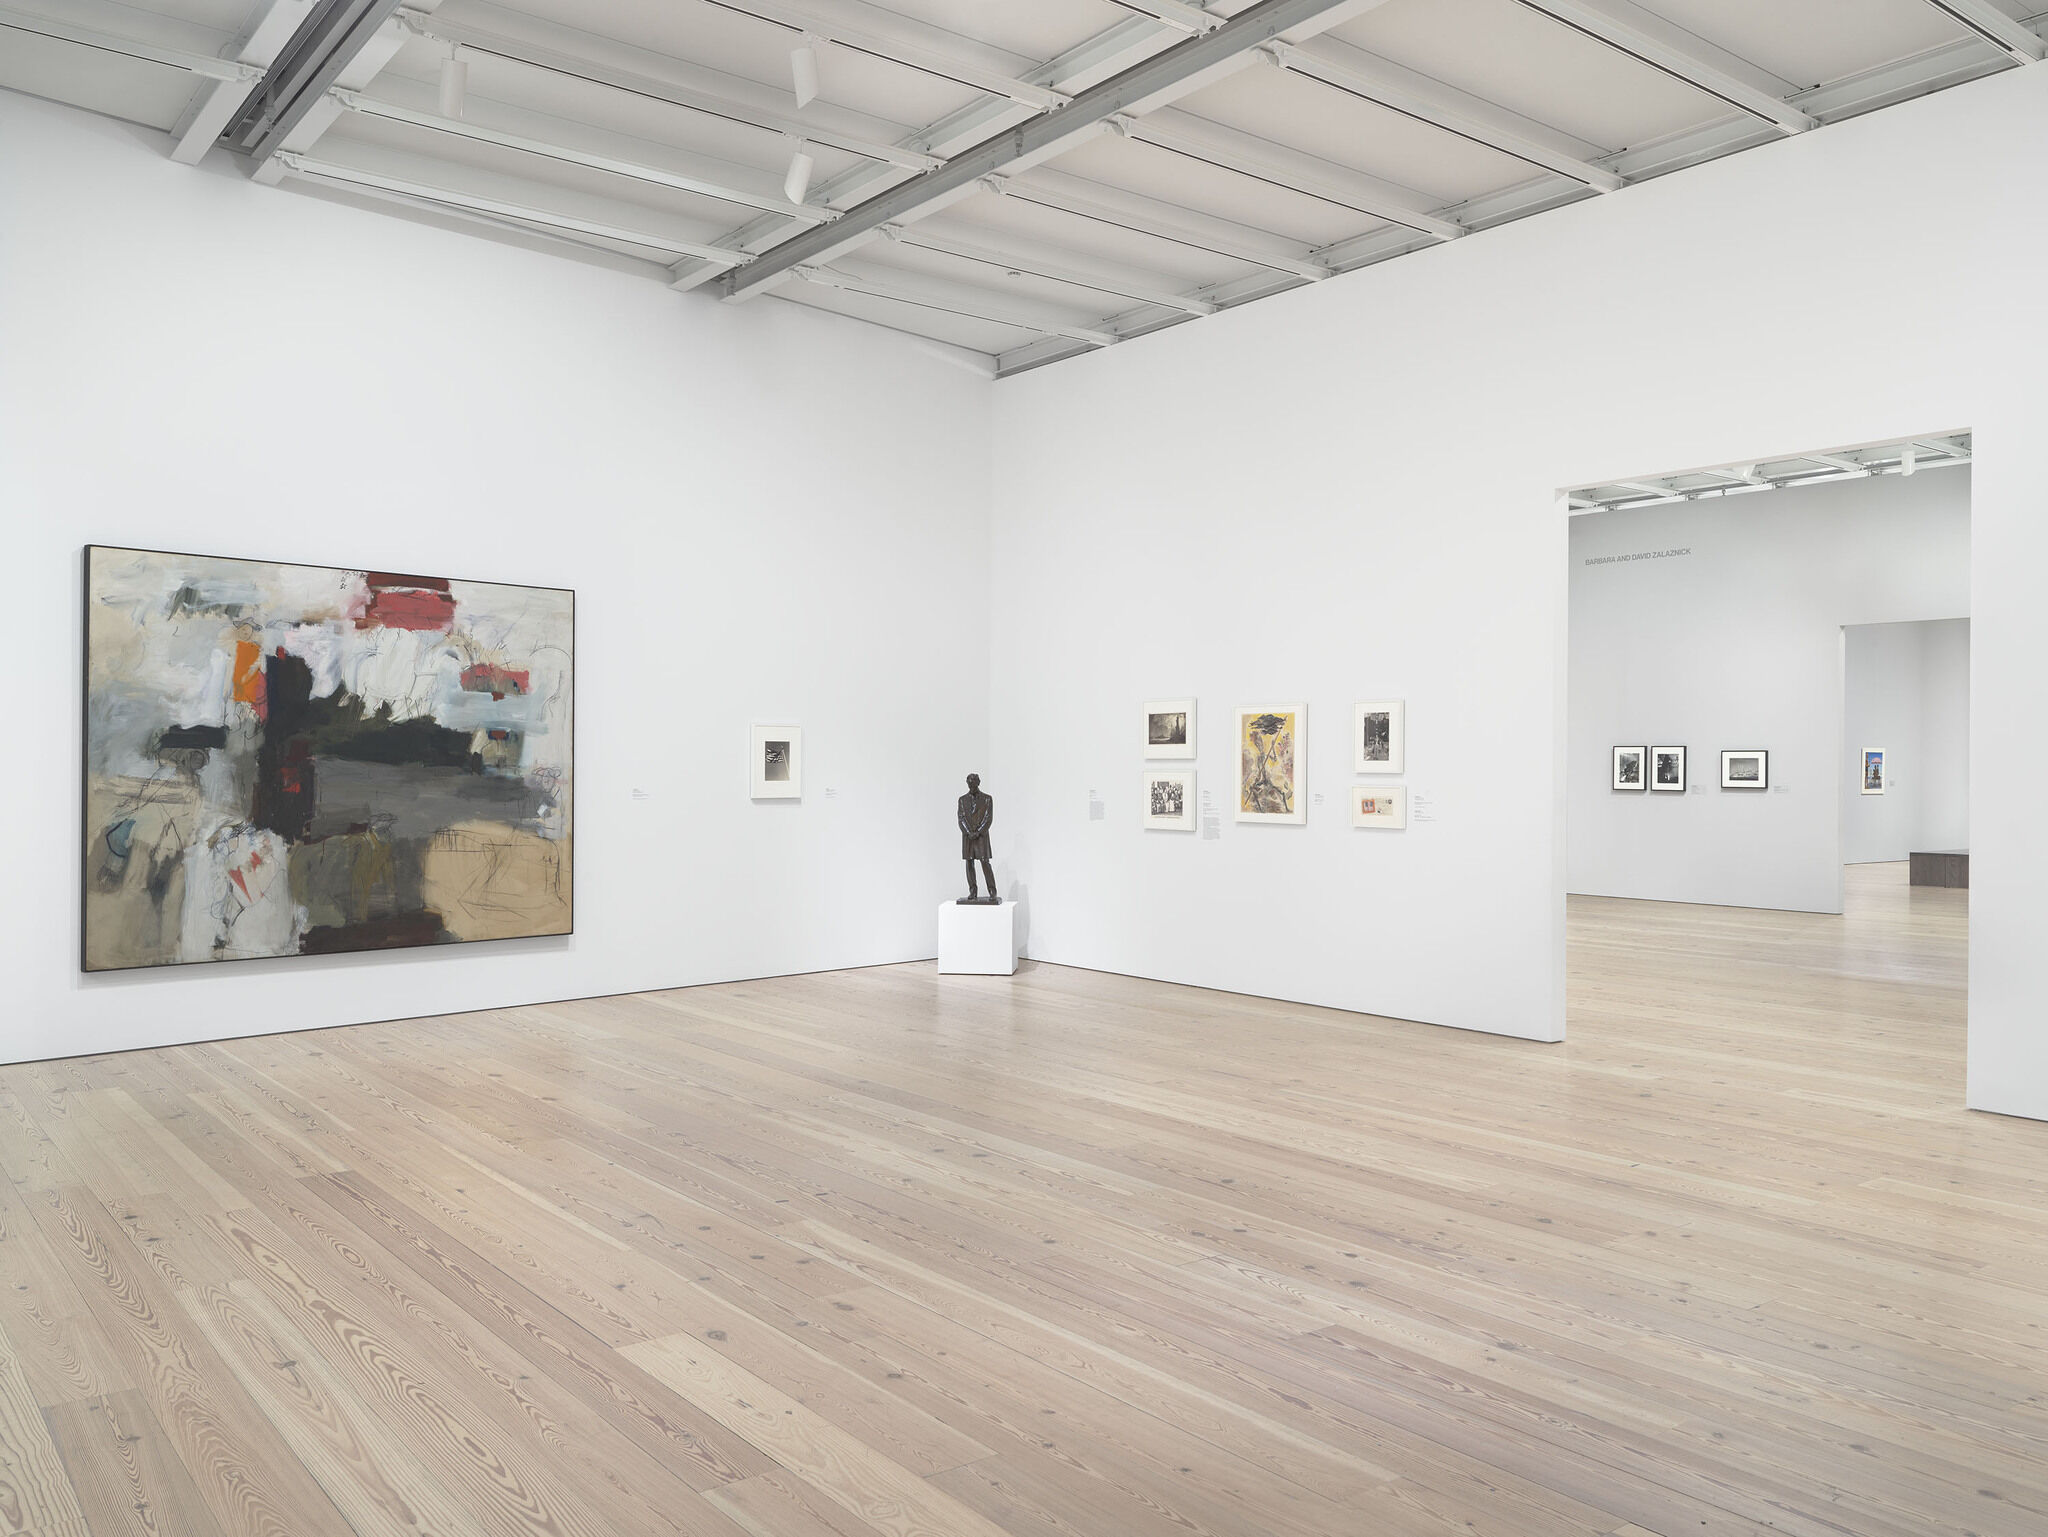 A gallery with a sculpture on display and works of art on the walls.